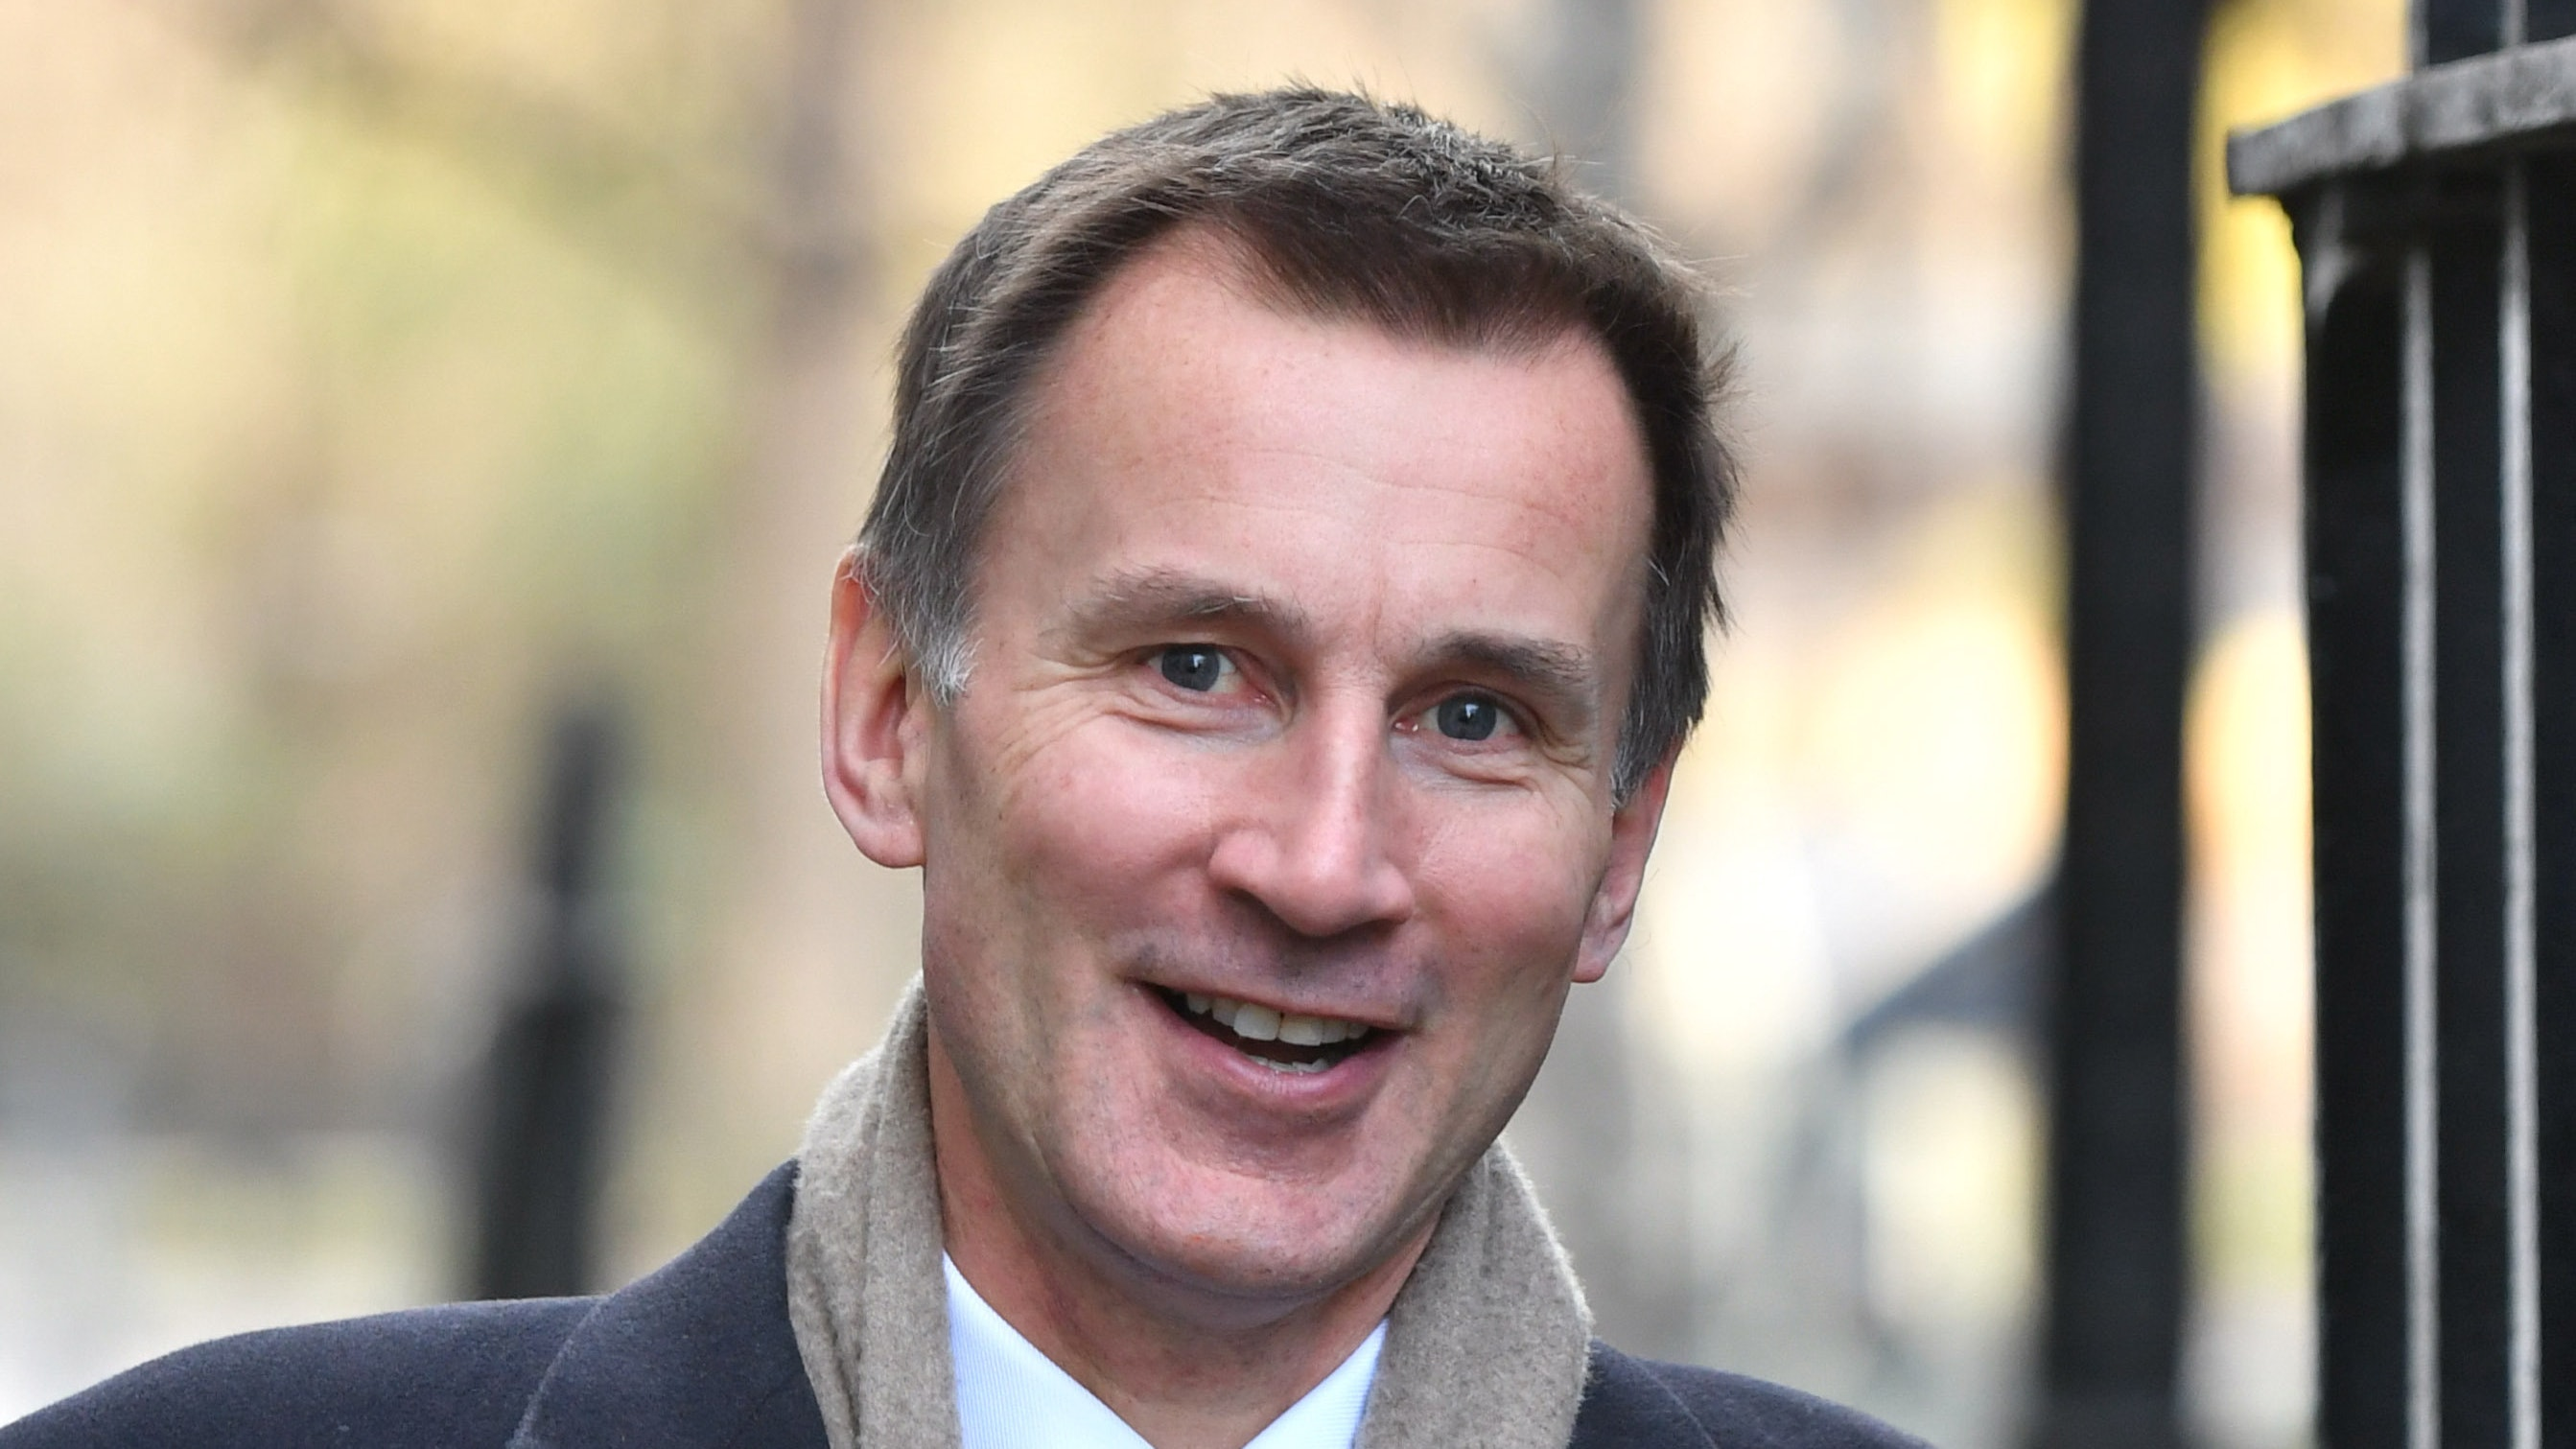 Don't use British citizen as political pawn, Hunt warns Kremlin